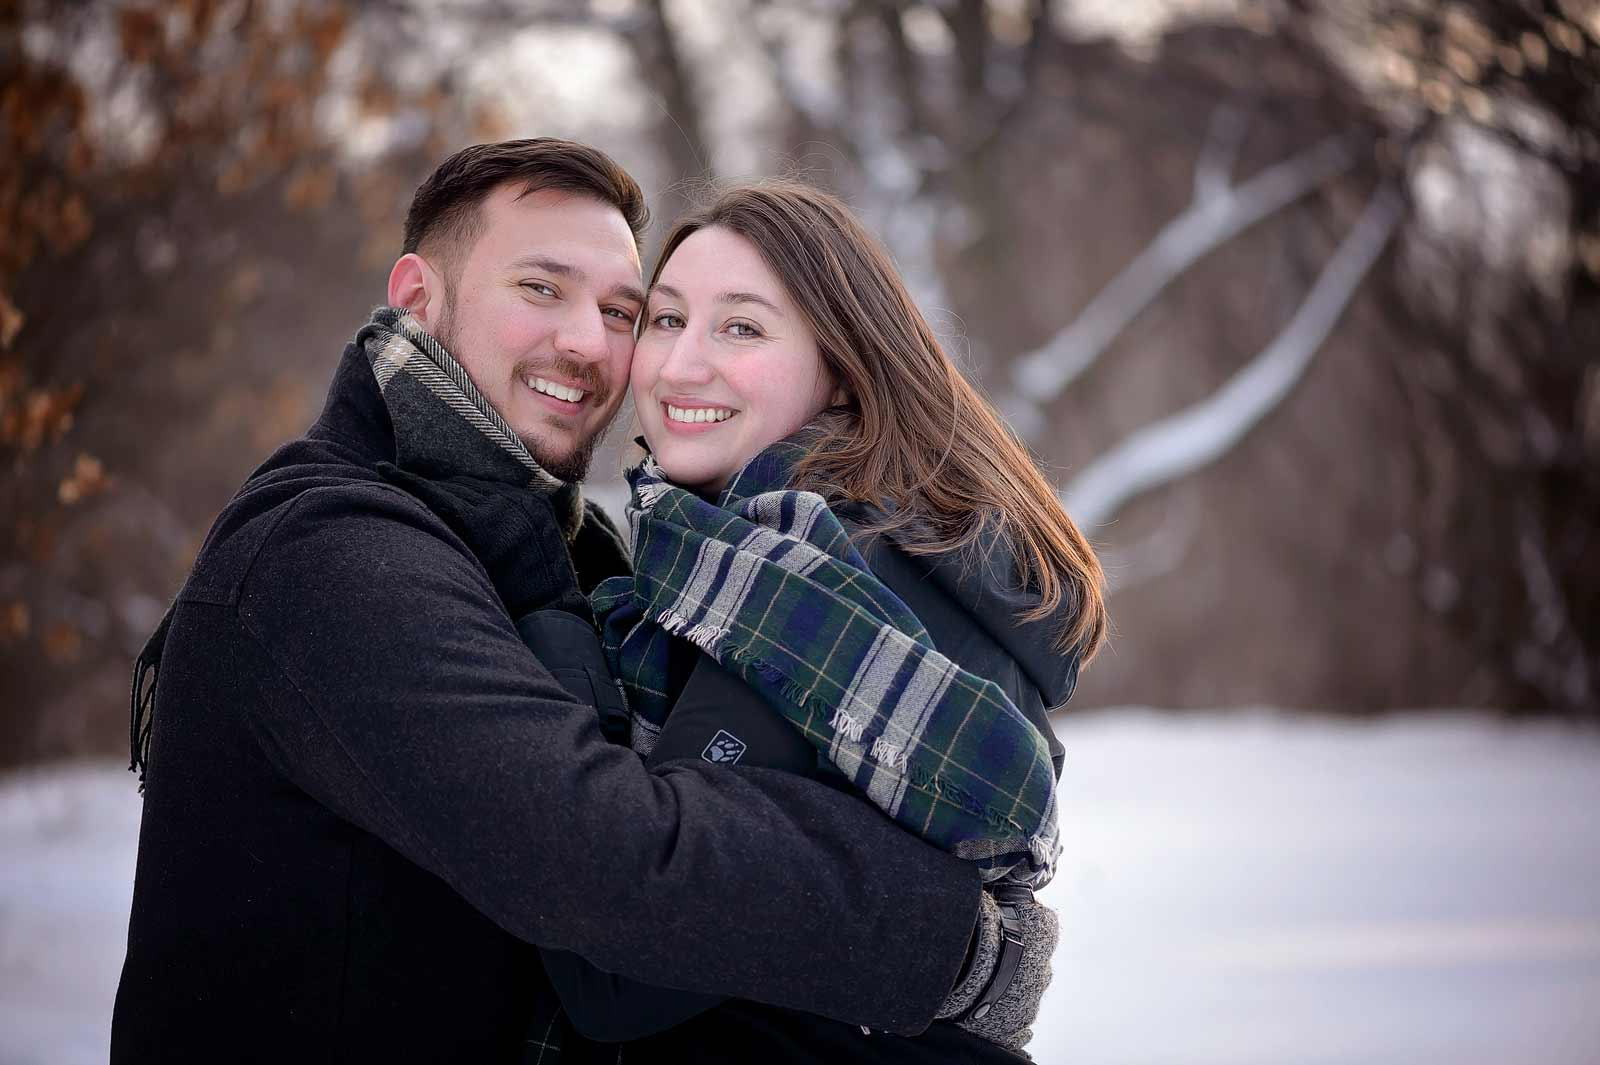 Lauren and Mike's engagement session at Billings Estates in Ottawa classic outdoor portrait in the snow